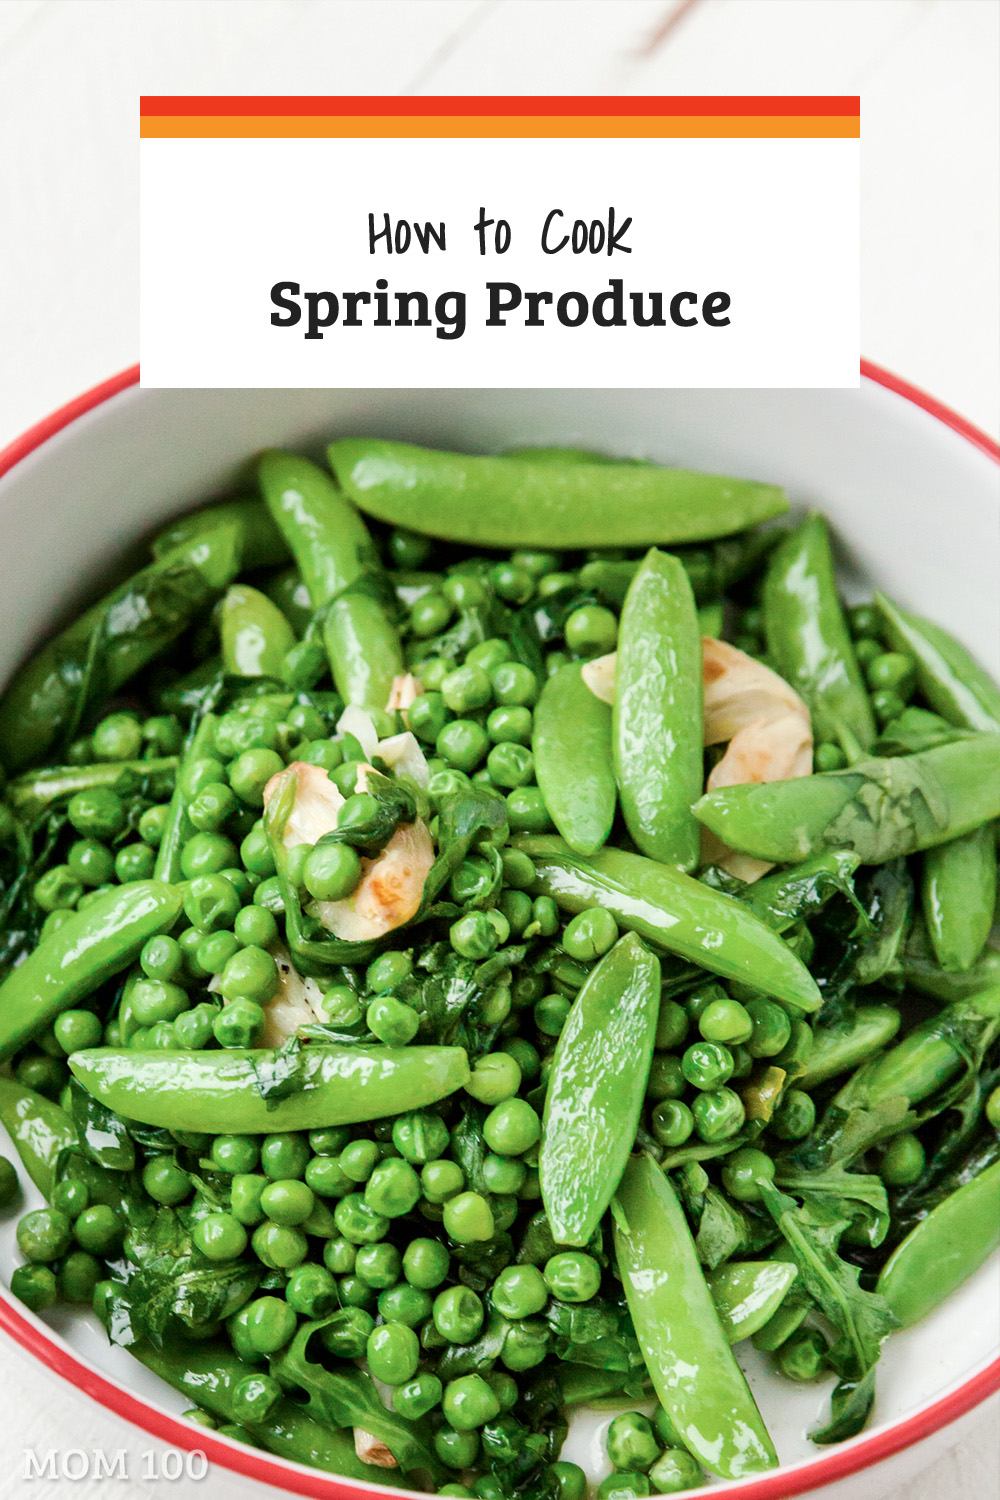 Farmers' markets are exploding with all kinds of produce. Put all of these beautiful fruits and vegetables to work! Here are some suggestions for ways to use all of the gorgeous produce of the spring season.